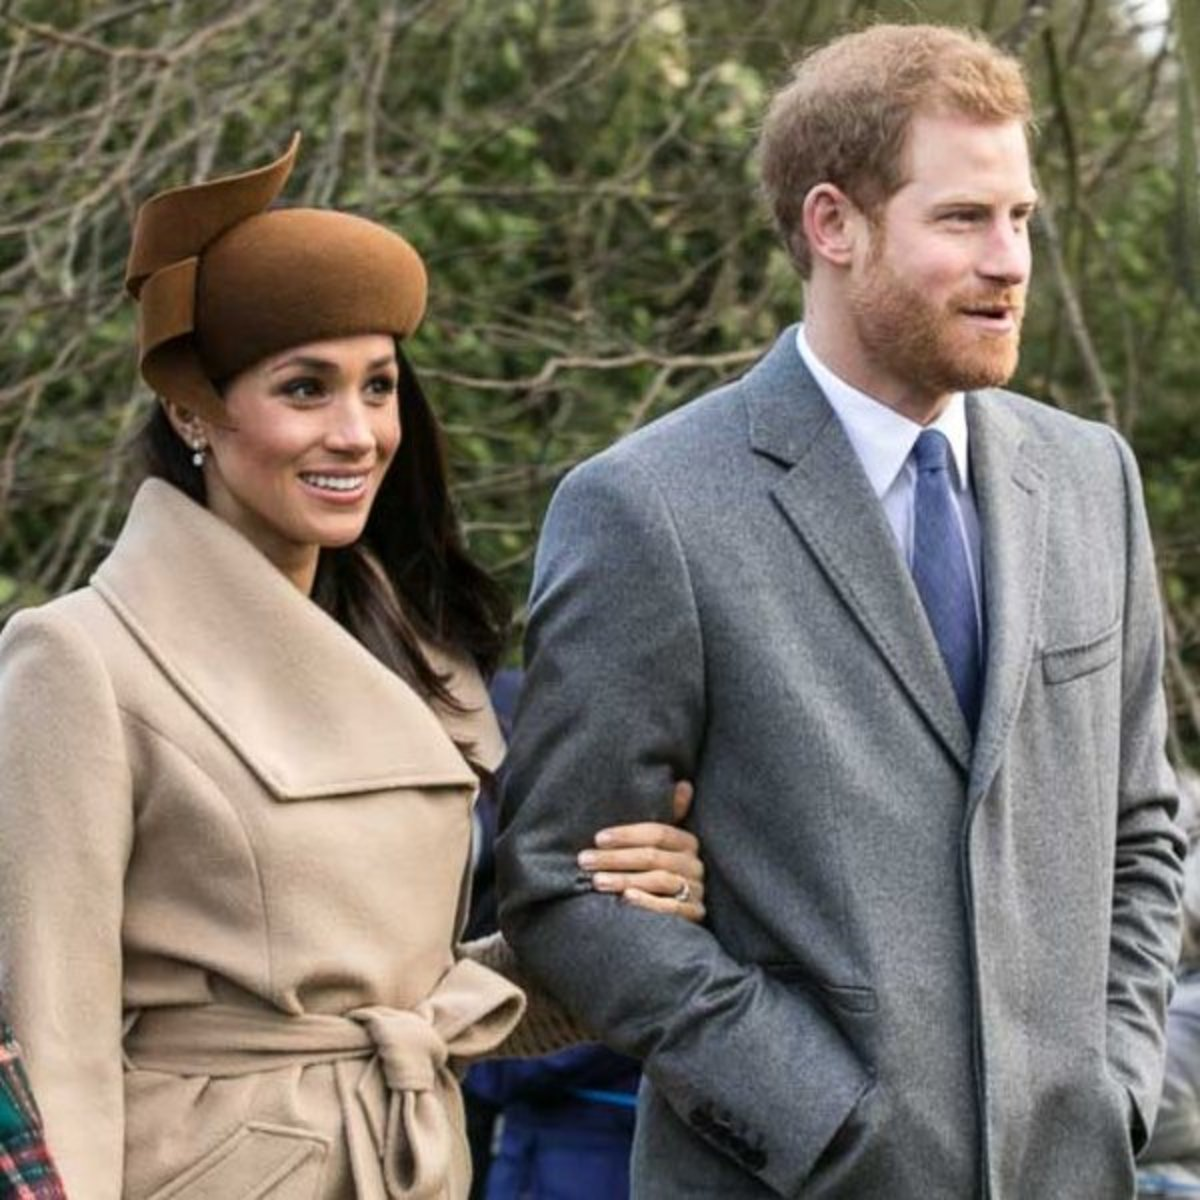 Meghan has natal Venus in Virgo. Prince Harry has a Virgo Sun. He found the light of his life. She found a star to follow.